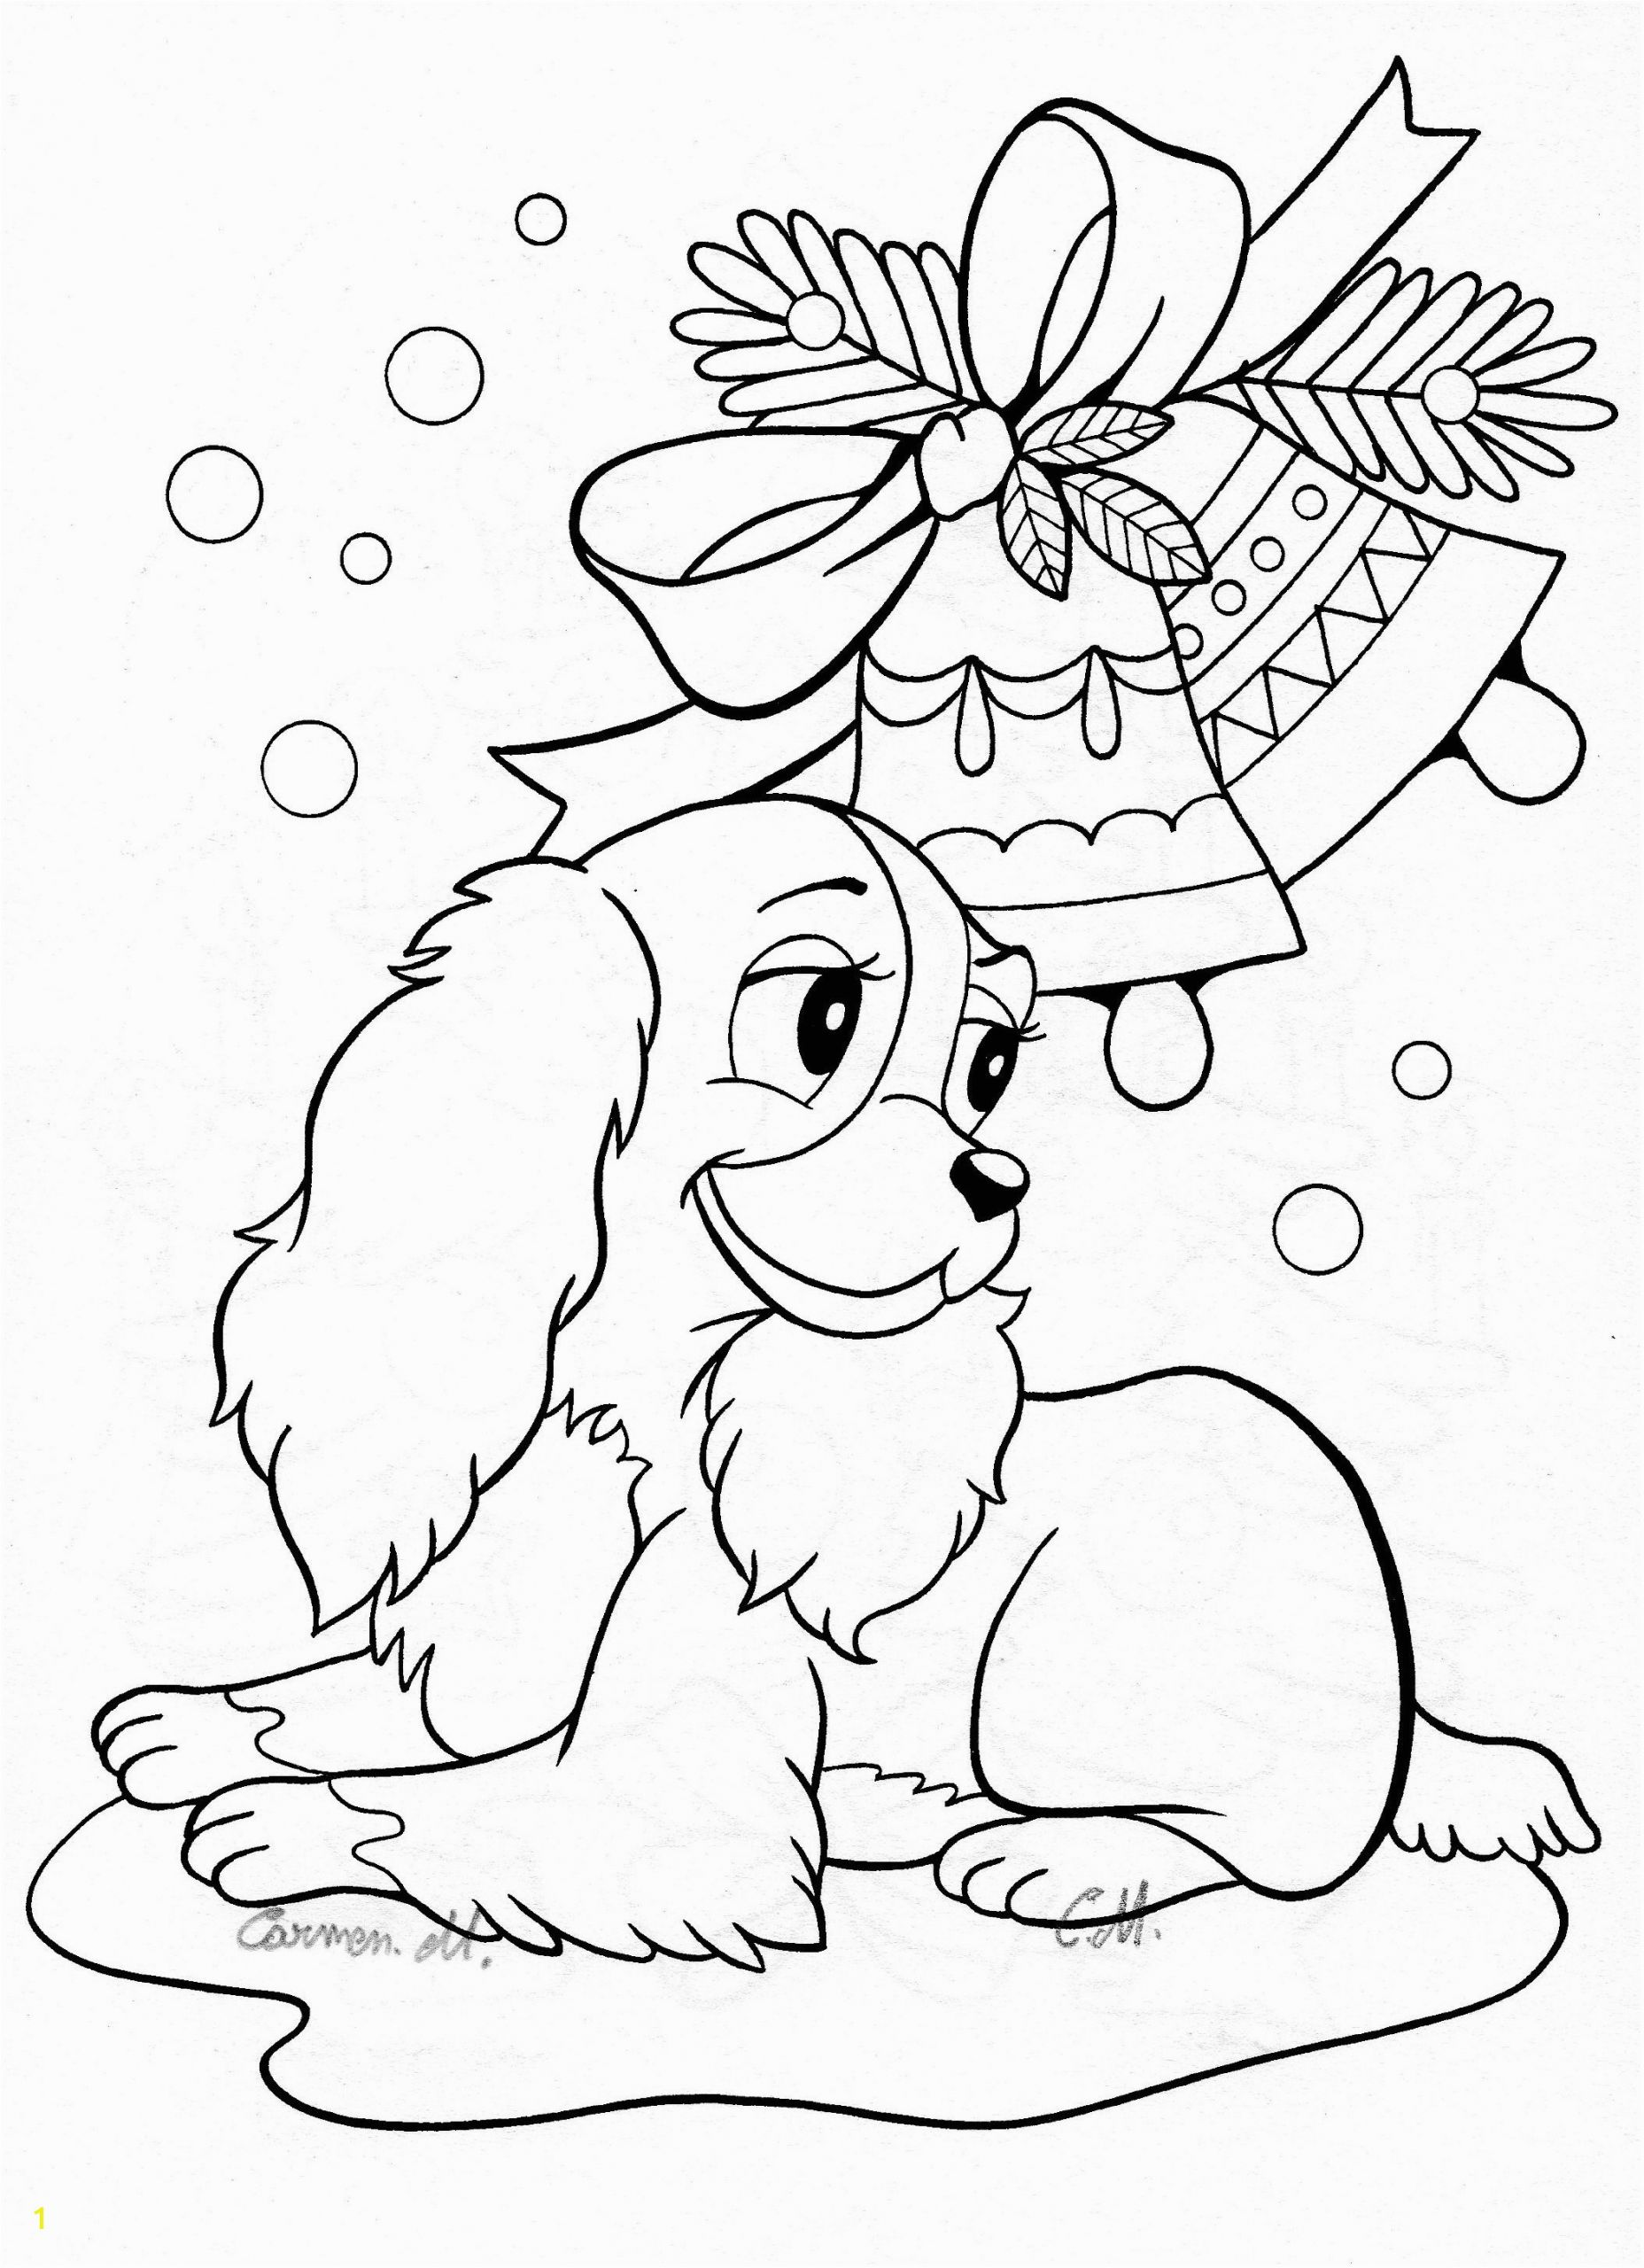 christmas pet coloring pages fresh printable od dog free colouring of dot art new frozen luxury awesome sheets lovely free